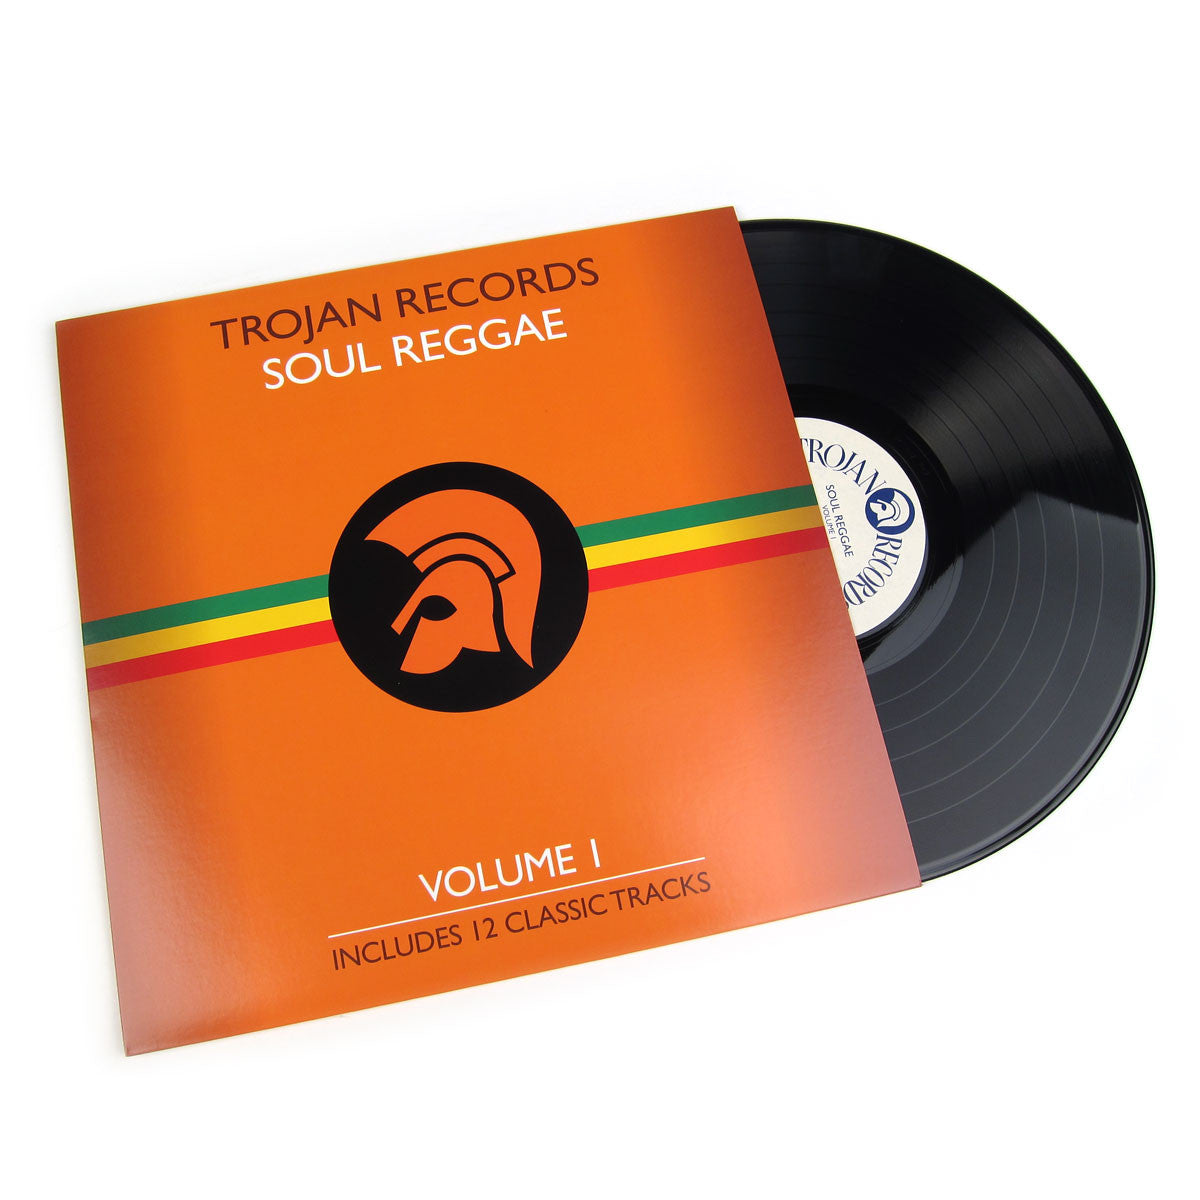 Trojan Records: Soul Reggae Volume 1 Vinyl LP